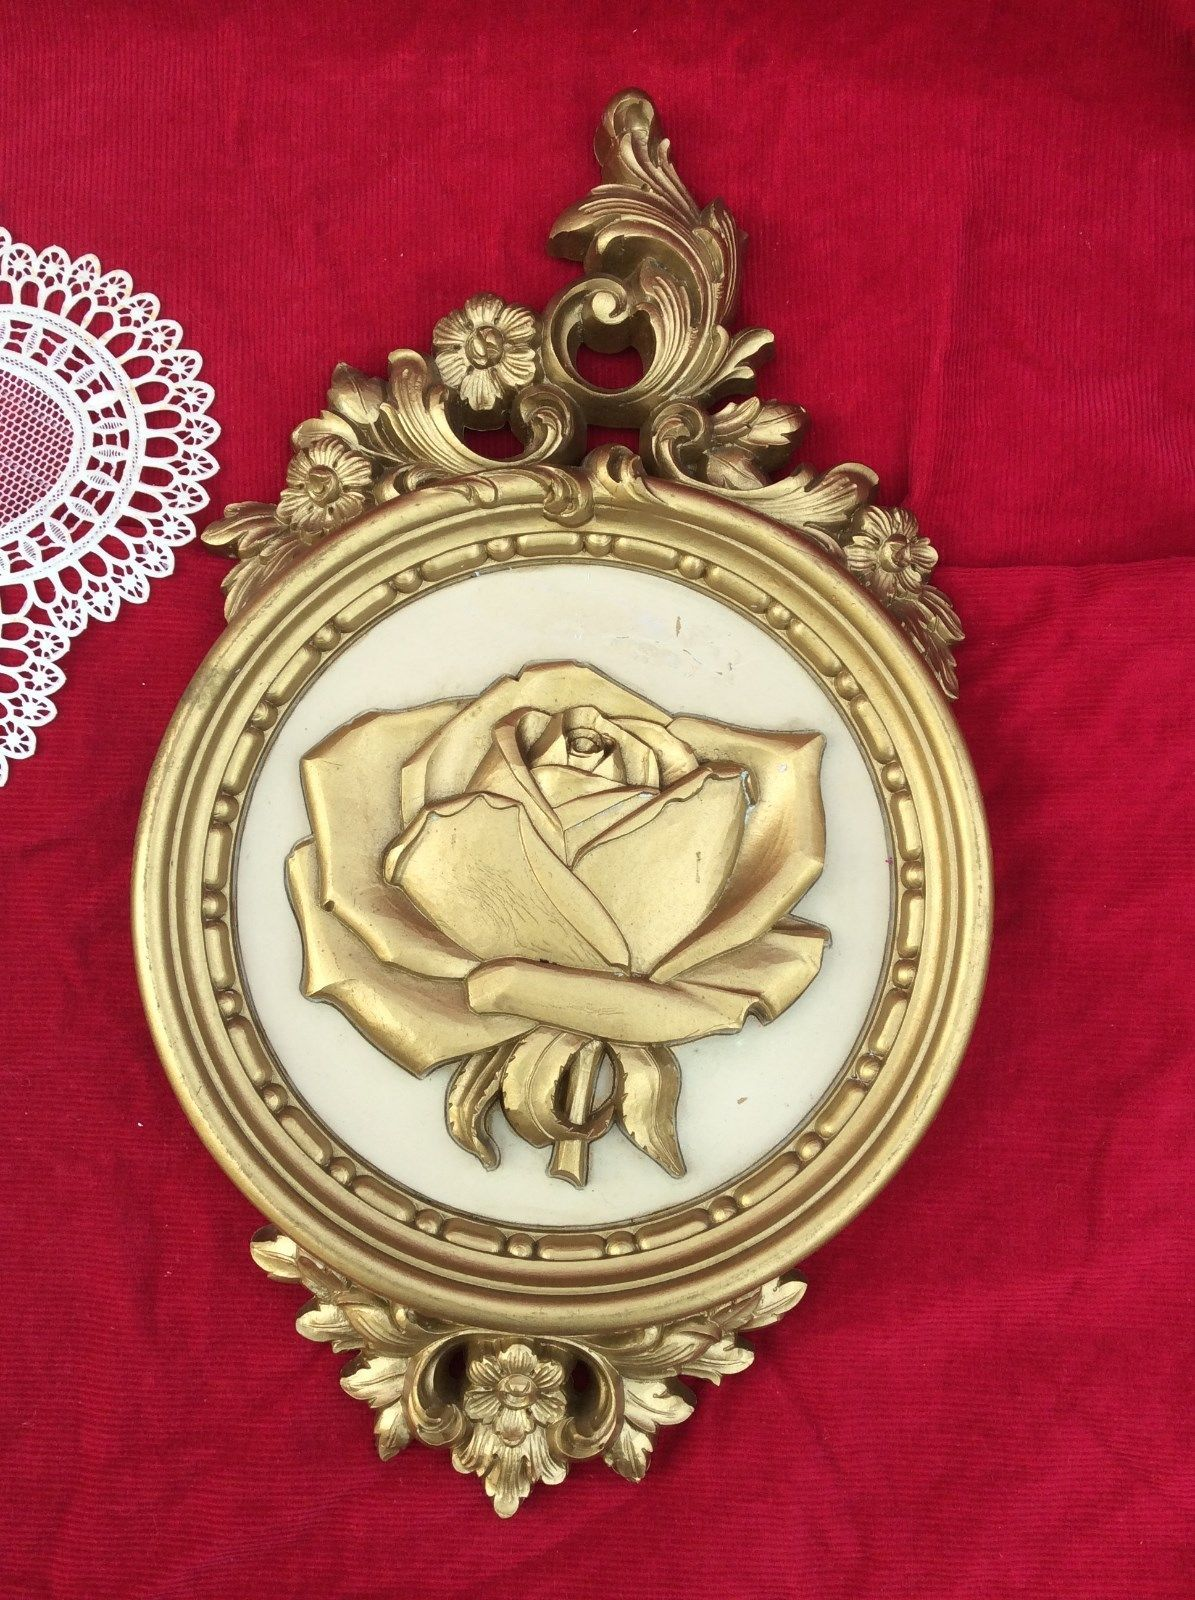 Wall Decor, Floral Plaques Hangings,Round and 50 similar items